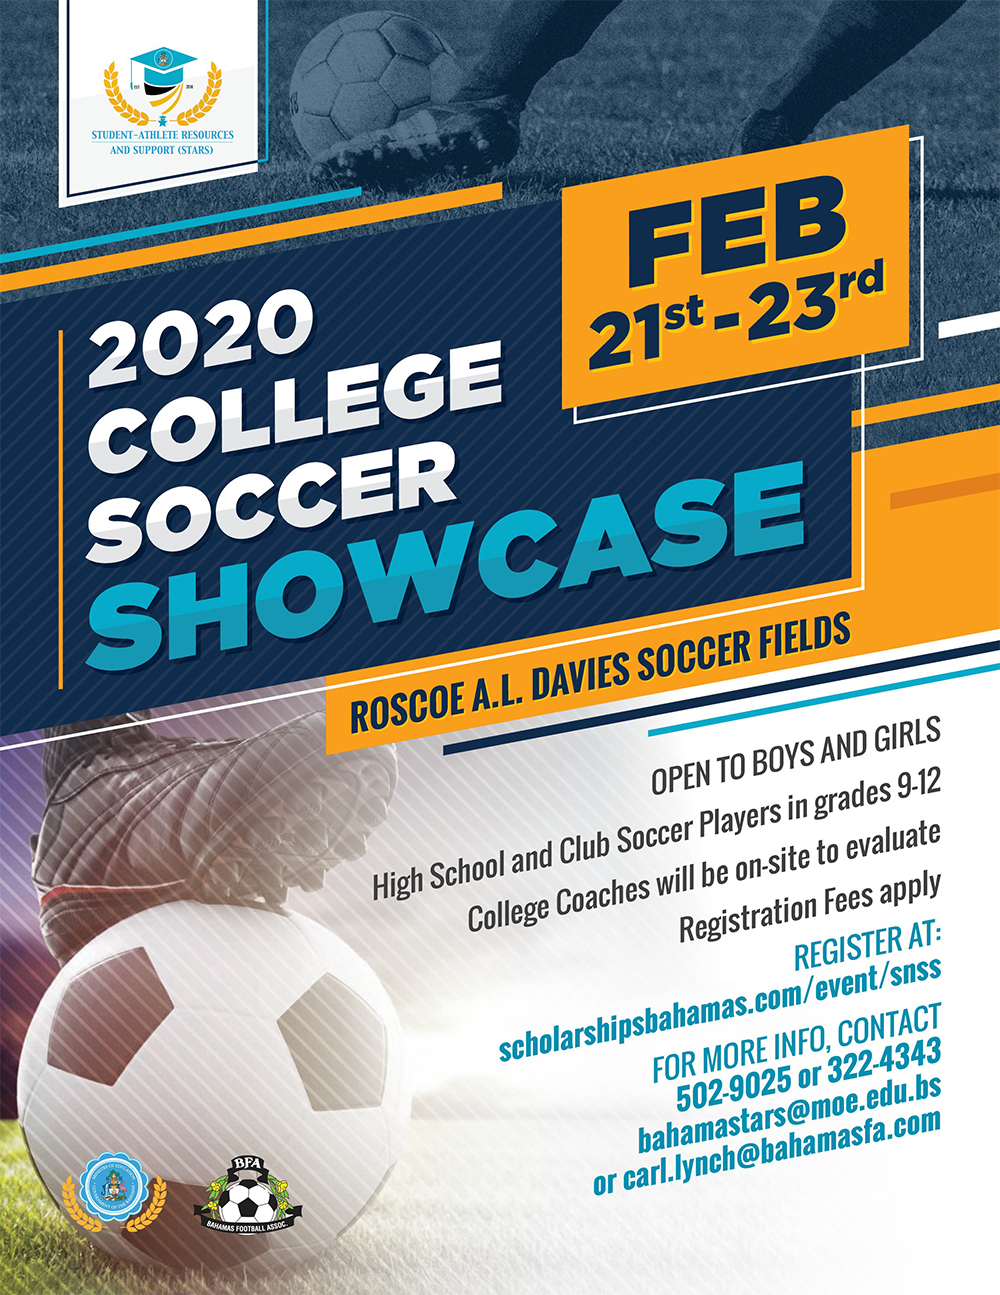 2020 College Soccer Showcase